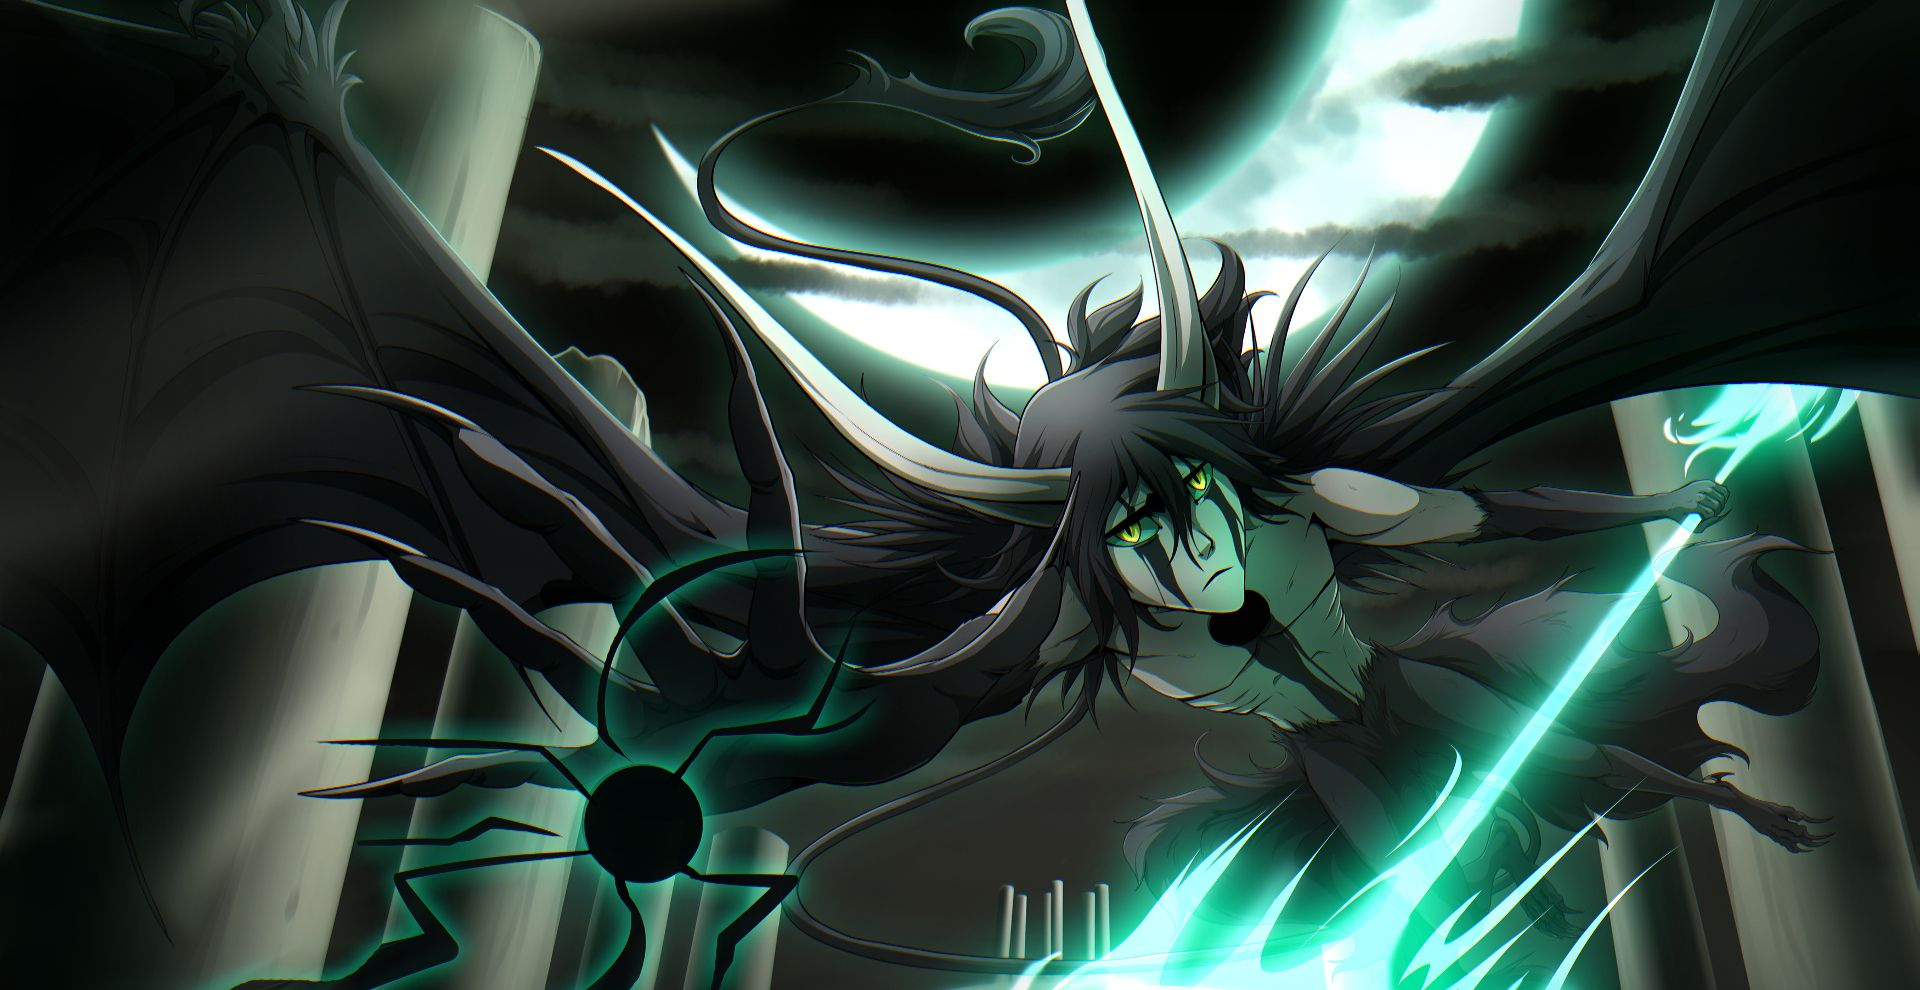 Ulquiorra Schiffer Cero Oscuras Lanza Del Relampago Ulquiorra Cifer Is Amazing Hd Wallpapers For Desktop Or Mobile In 2020 Anime Amazing Hd Wallpapers Cool Drawings